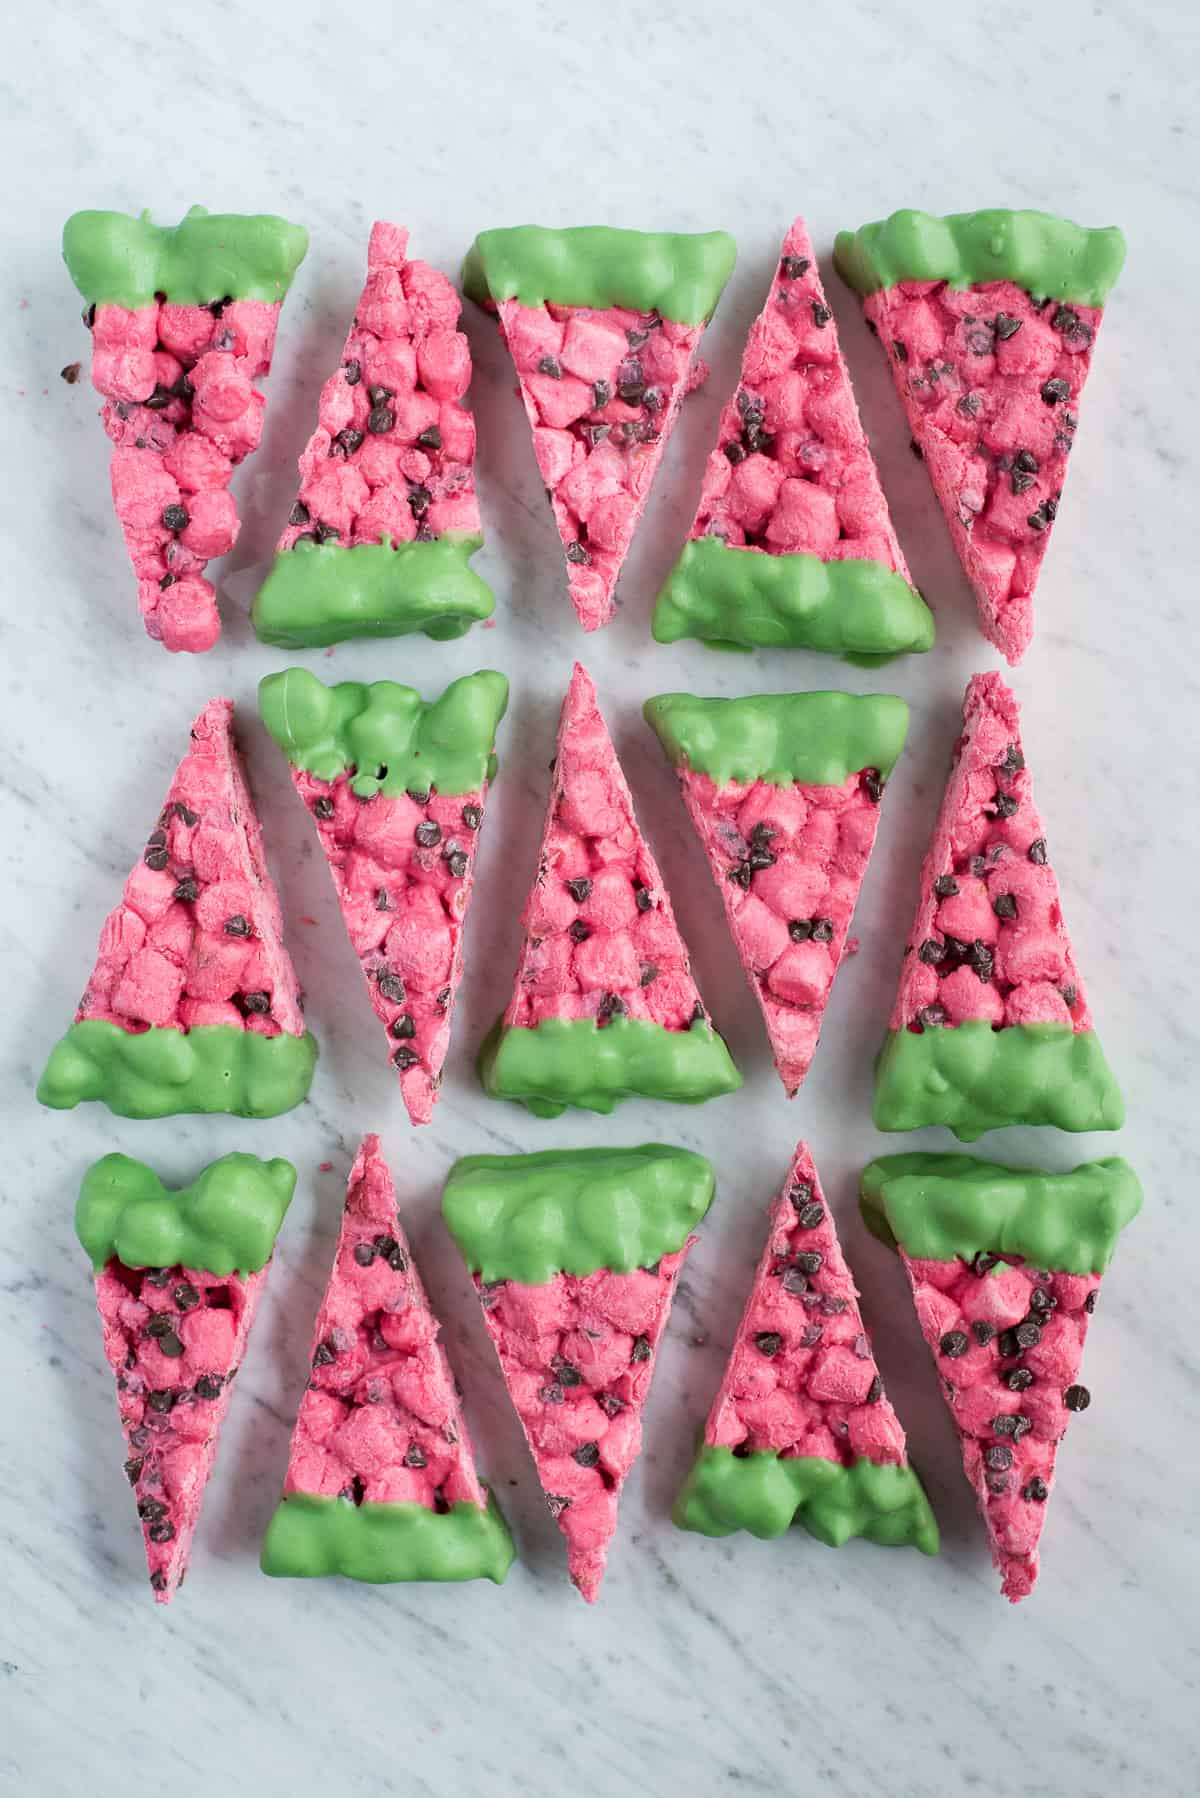 pink and green watermelon marshmallow slices on marble background